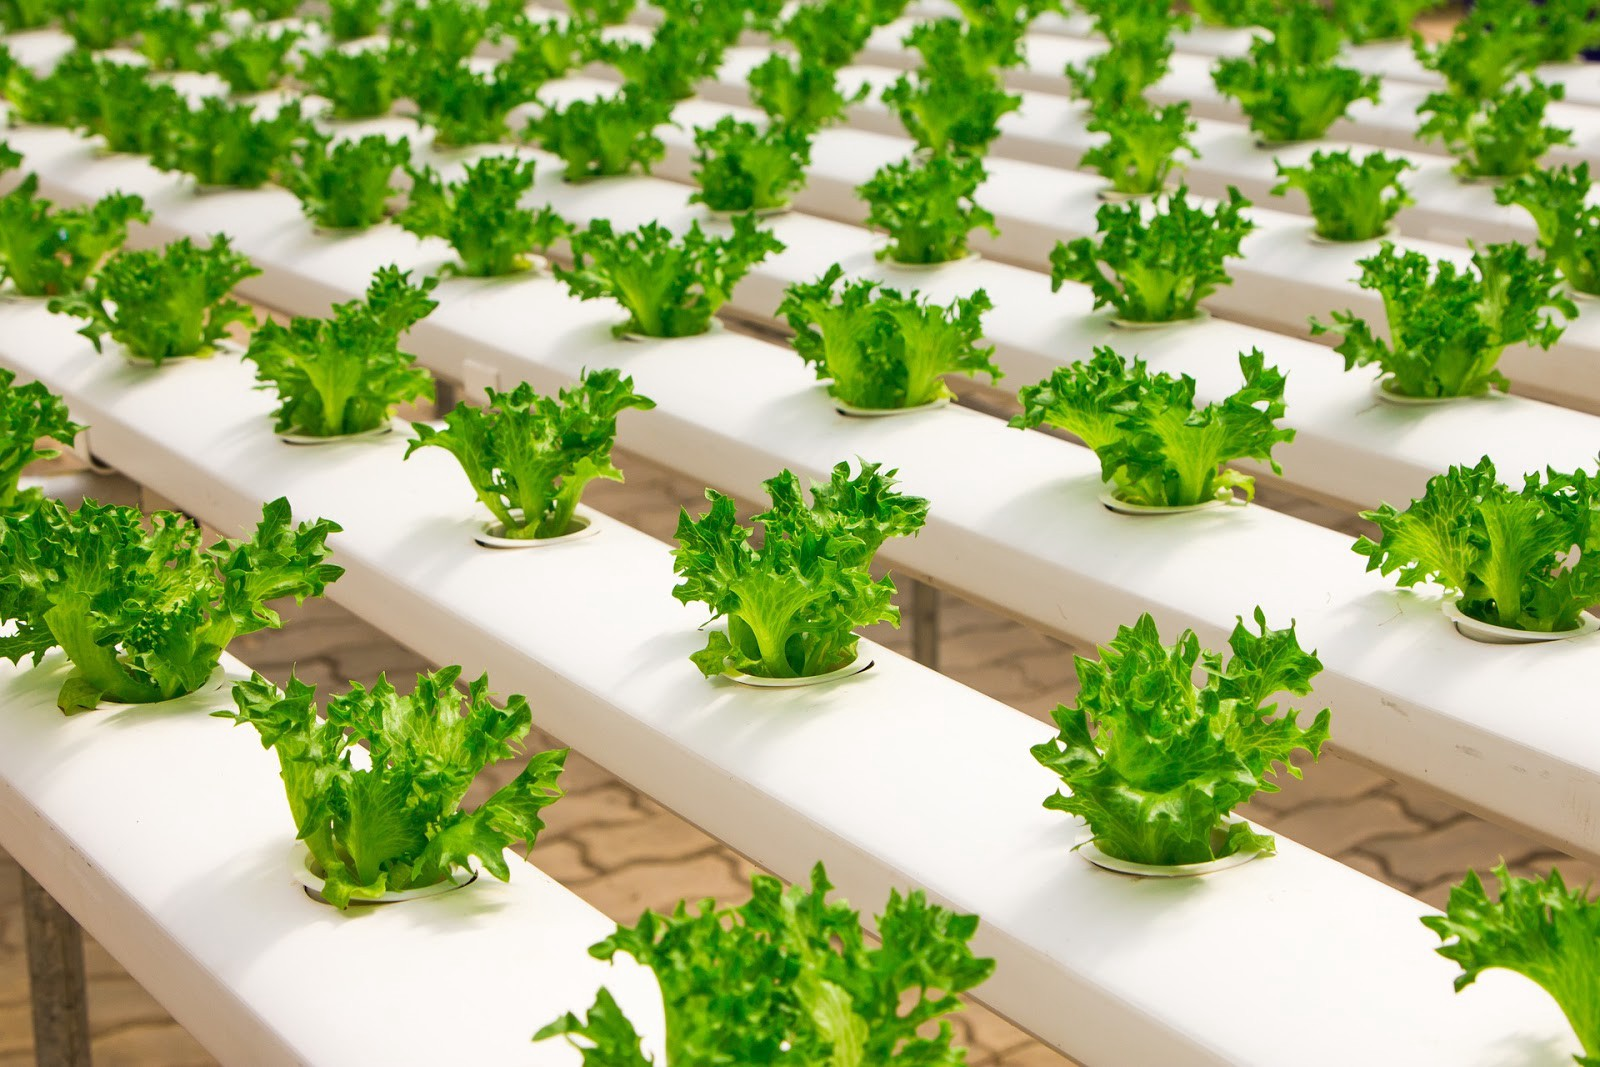 Hydroponic gardening: The future of cannabis cultivation